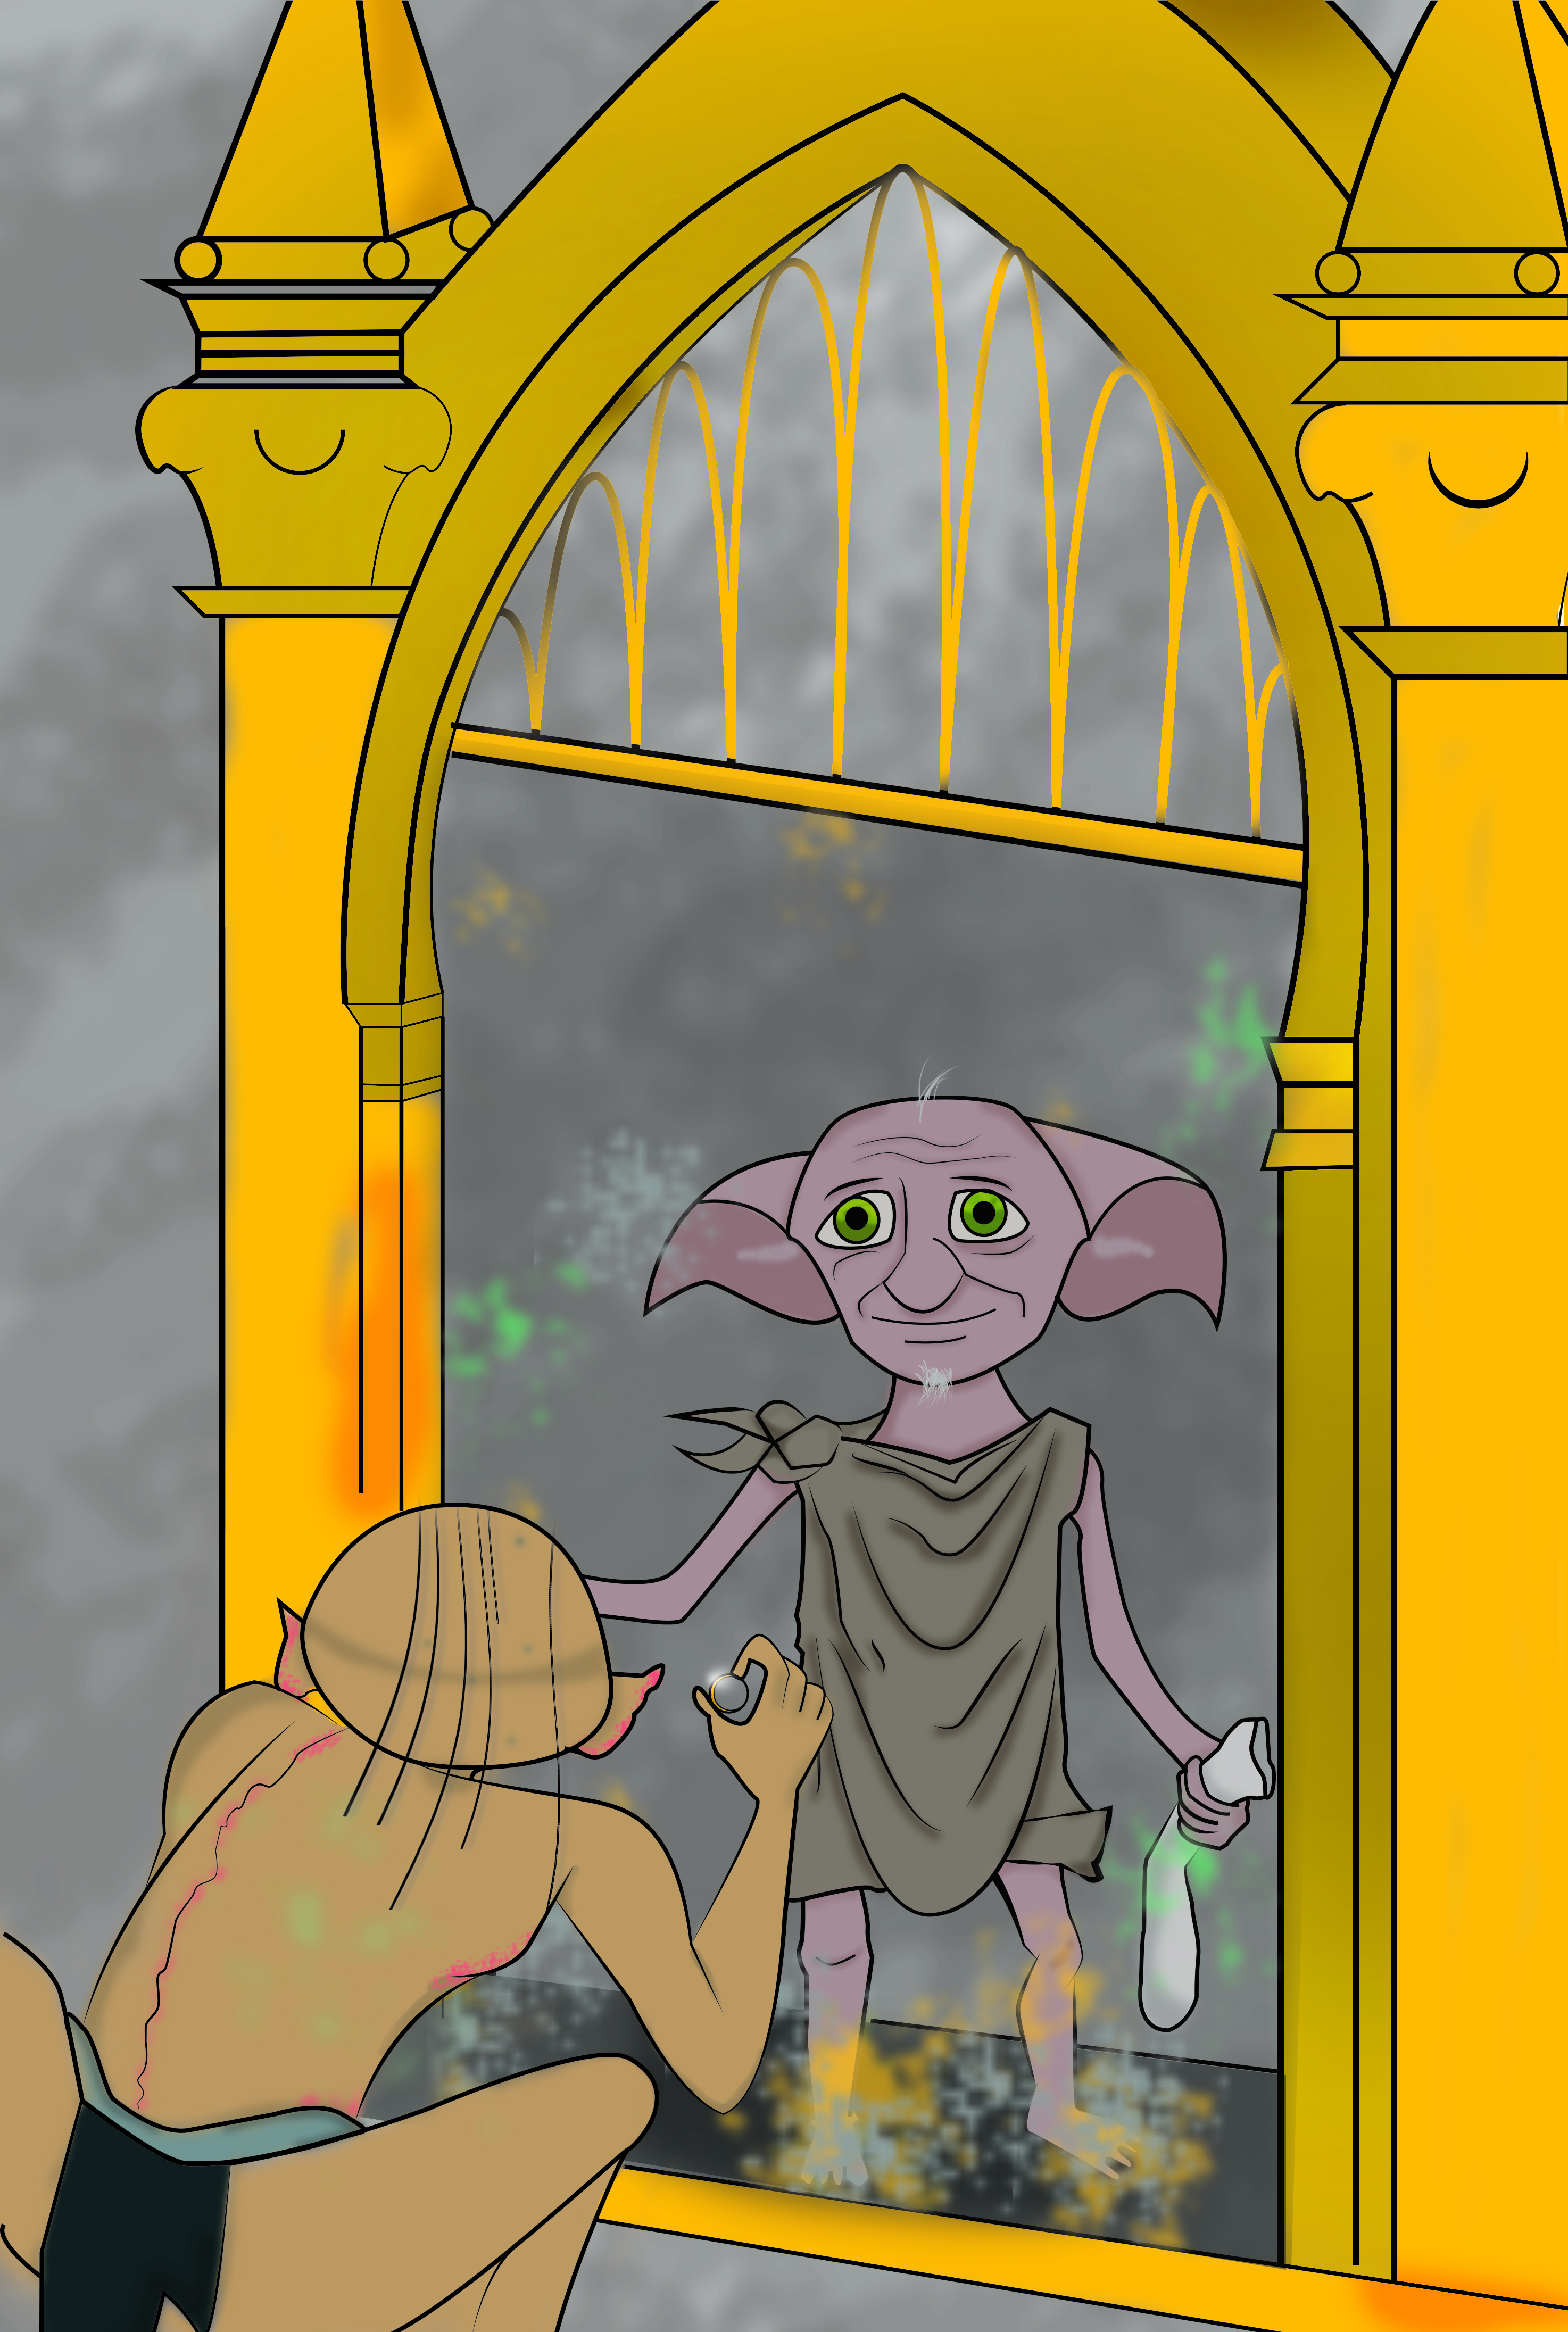 Gollum Sees Dobby in the Mirror of Erised